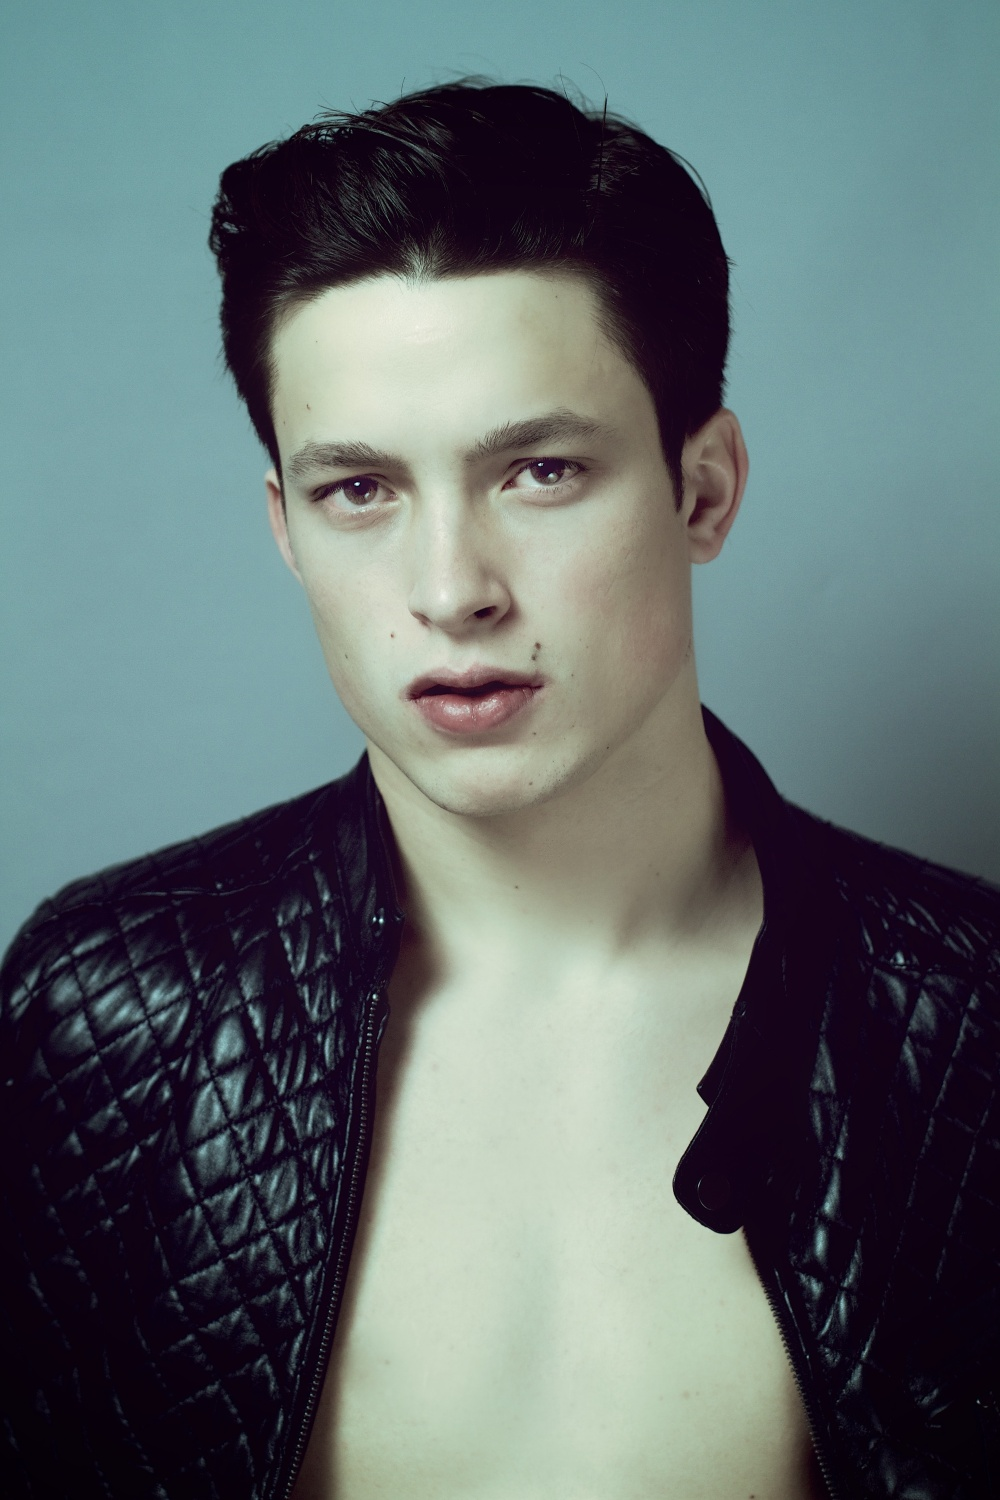 Unsigned MGMT welcomes Thomas Charruau - scouted and photographed by Cesar Perin